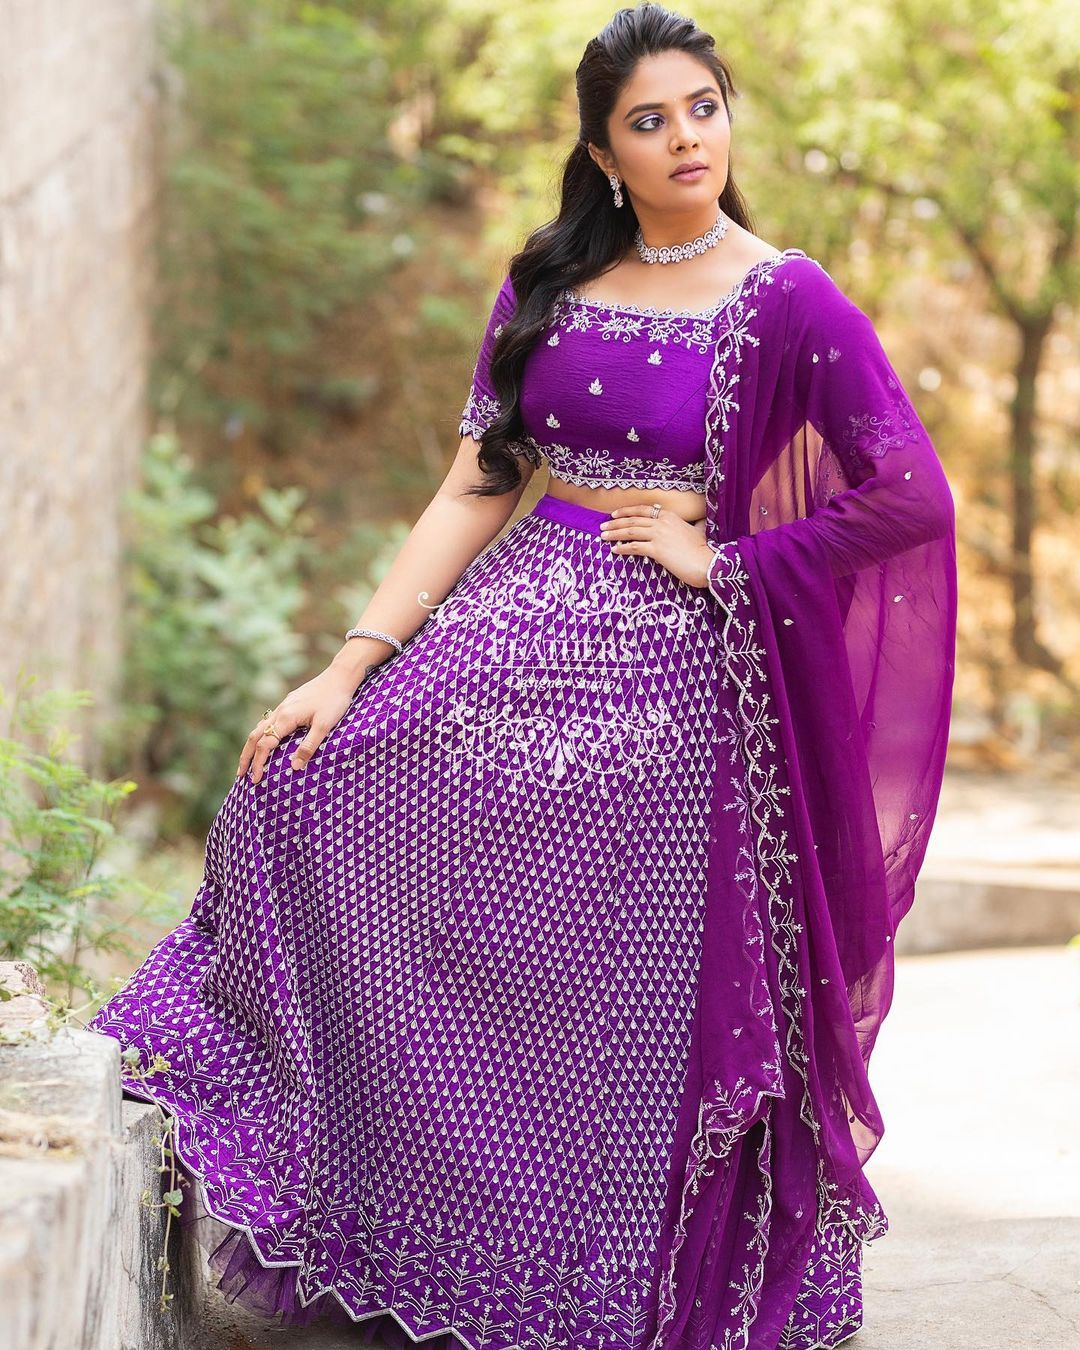 Ever charming beauty Sreemukhi in  Feathers Boutique classy Bridal collection.  Outfit: Feathersbtq . Styles by : Priyankasaha jananda. 2021-04-05